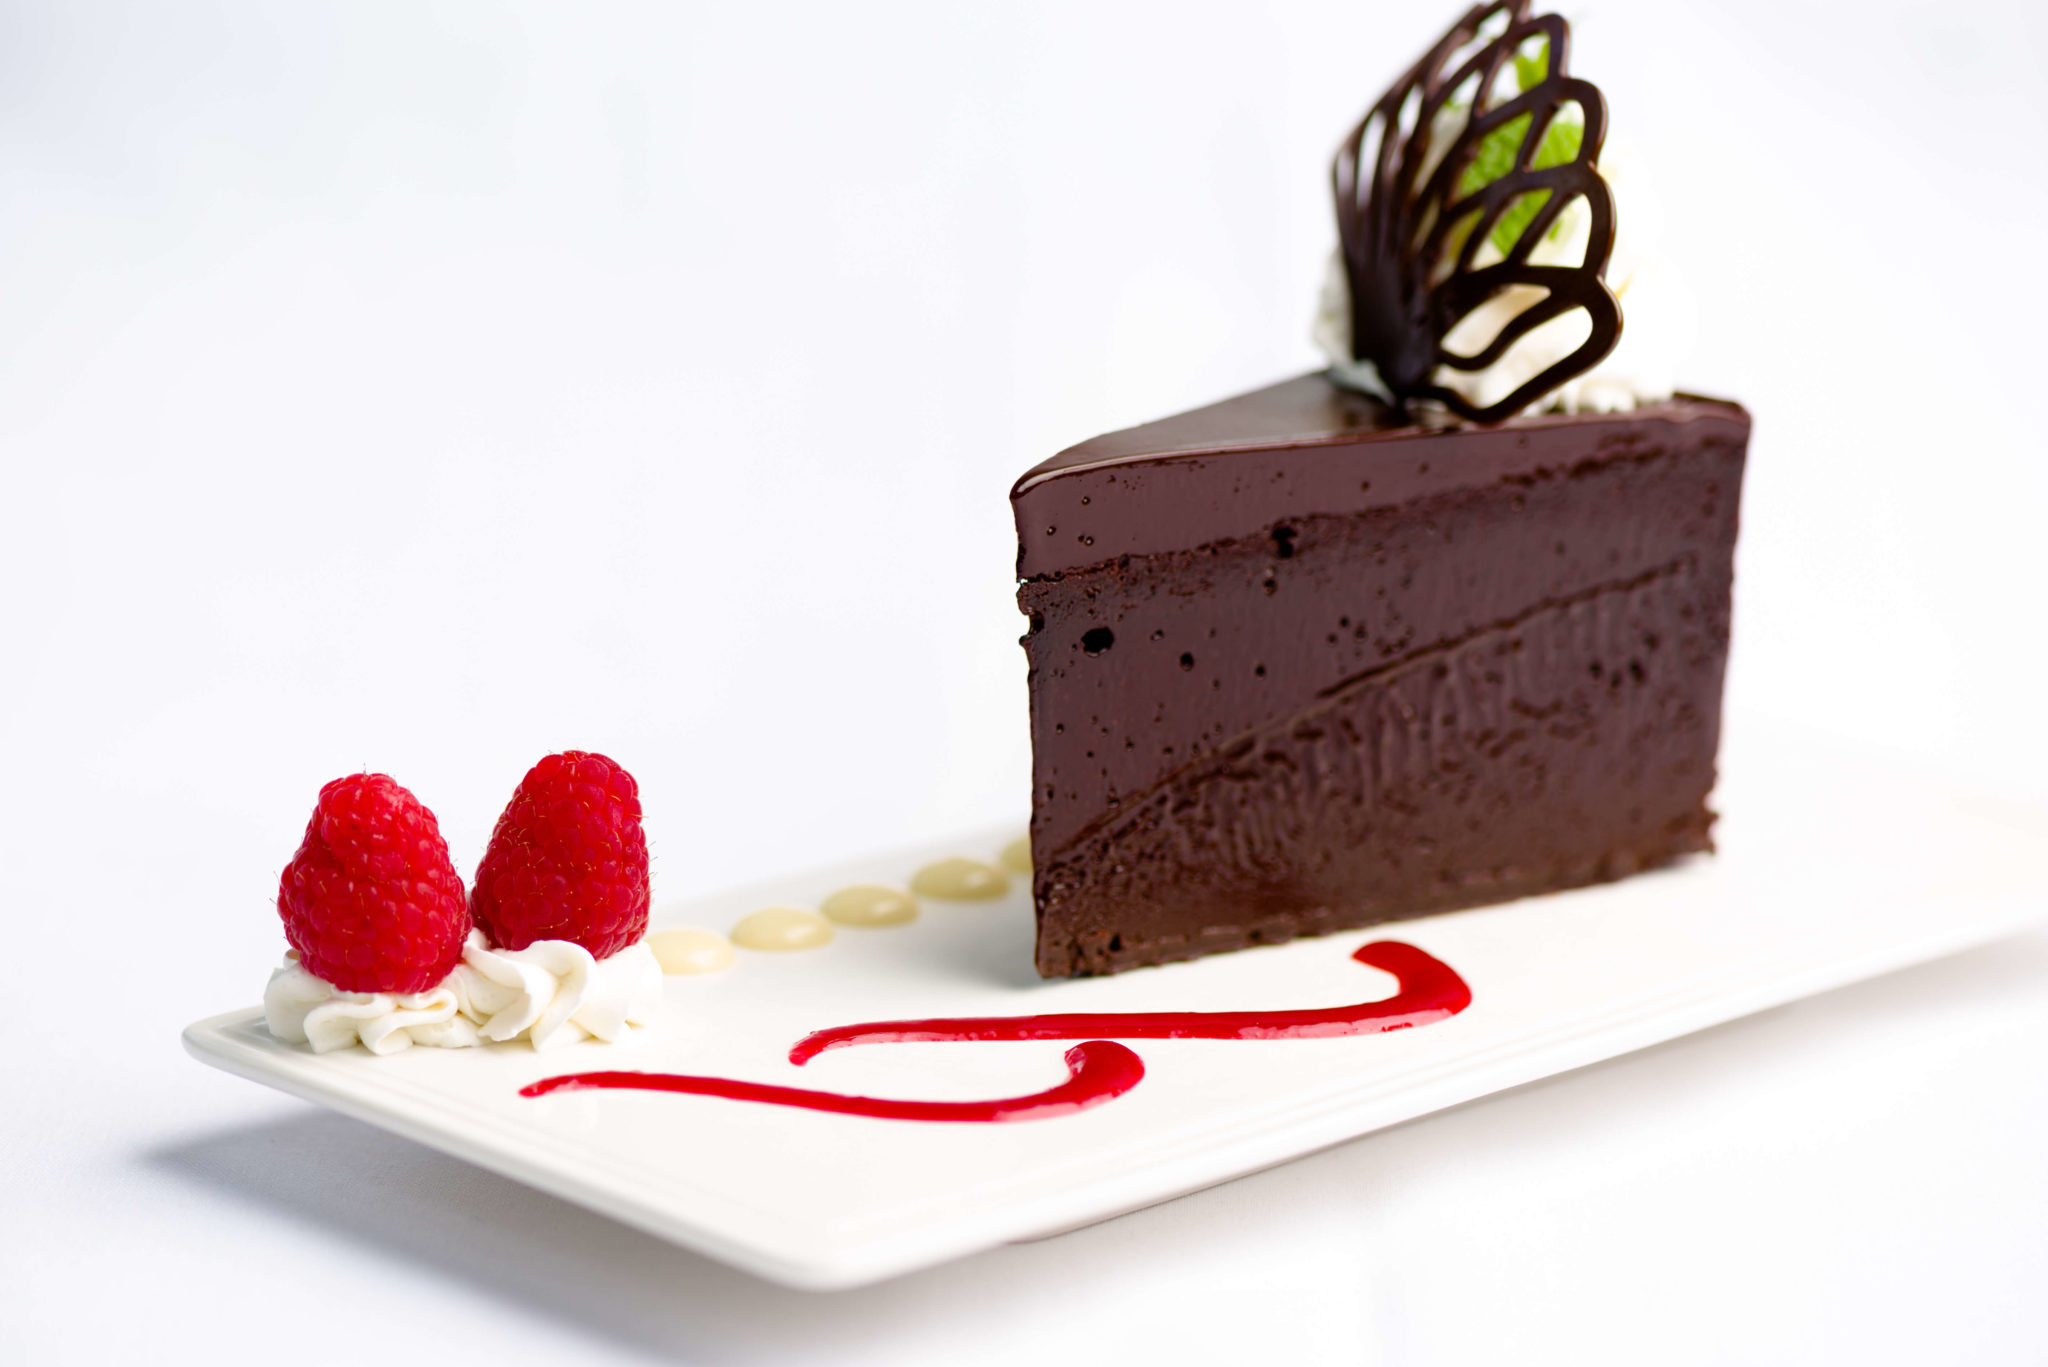 Image of Chocolate Decadence—sinfully delicious dense and intense flourless chocolate cake